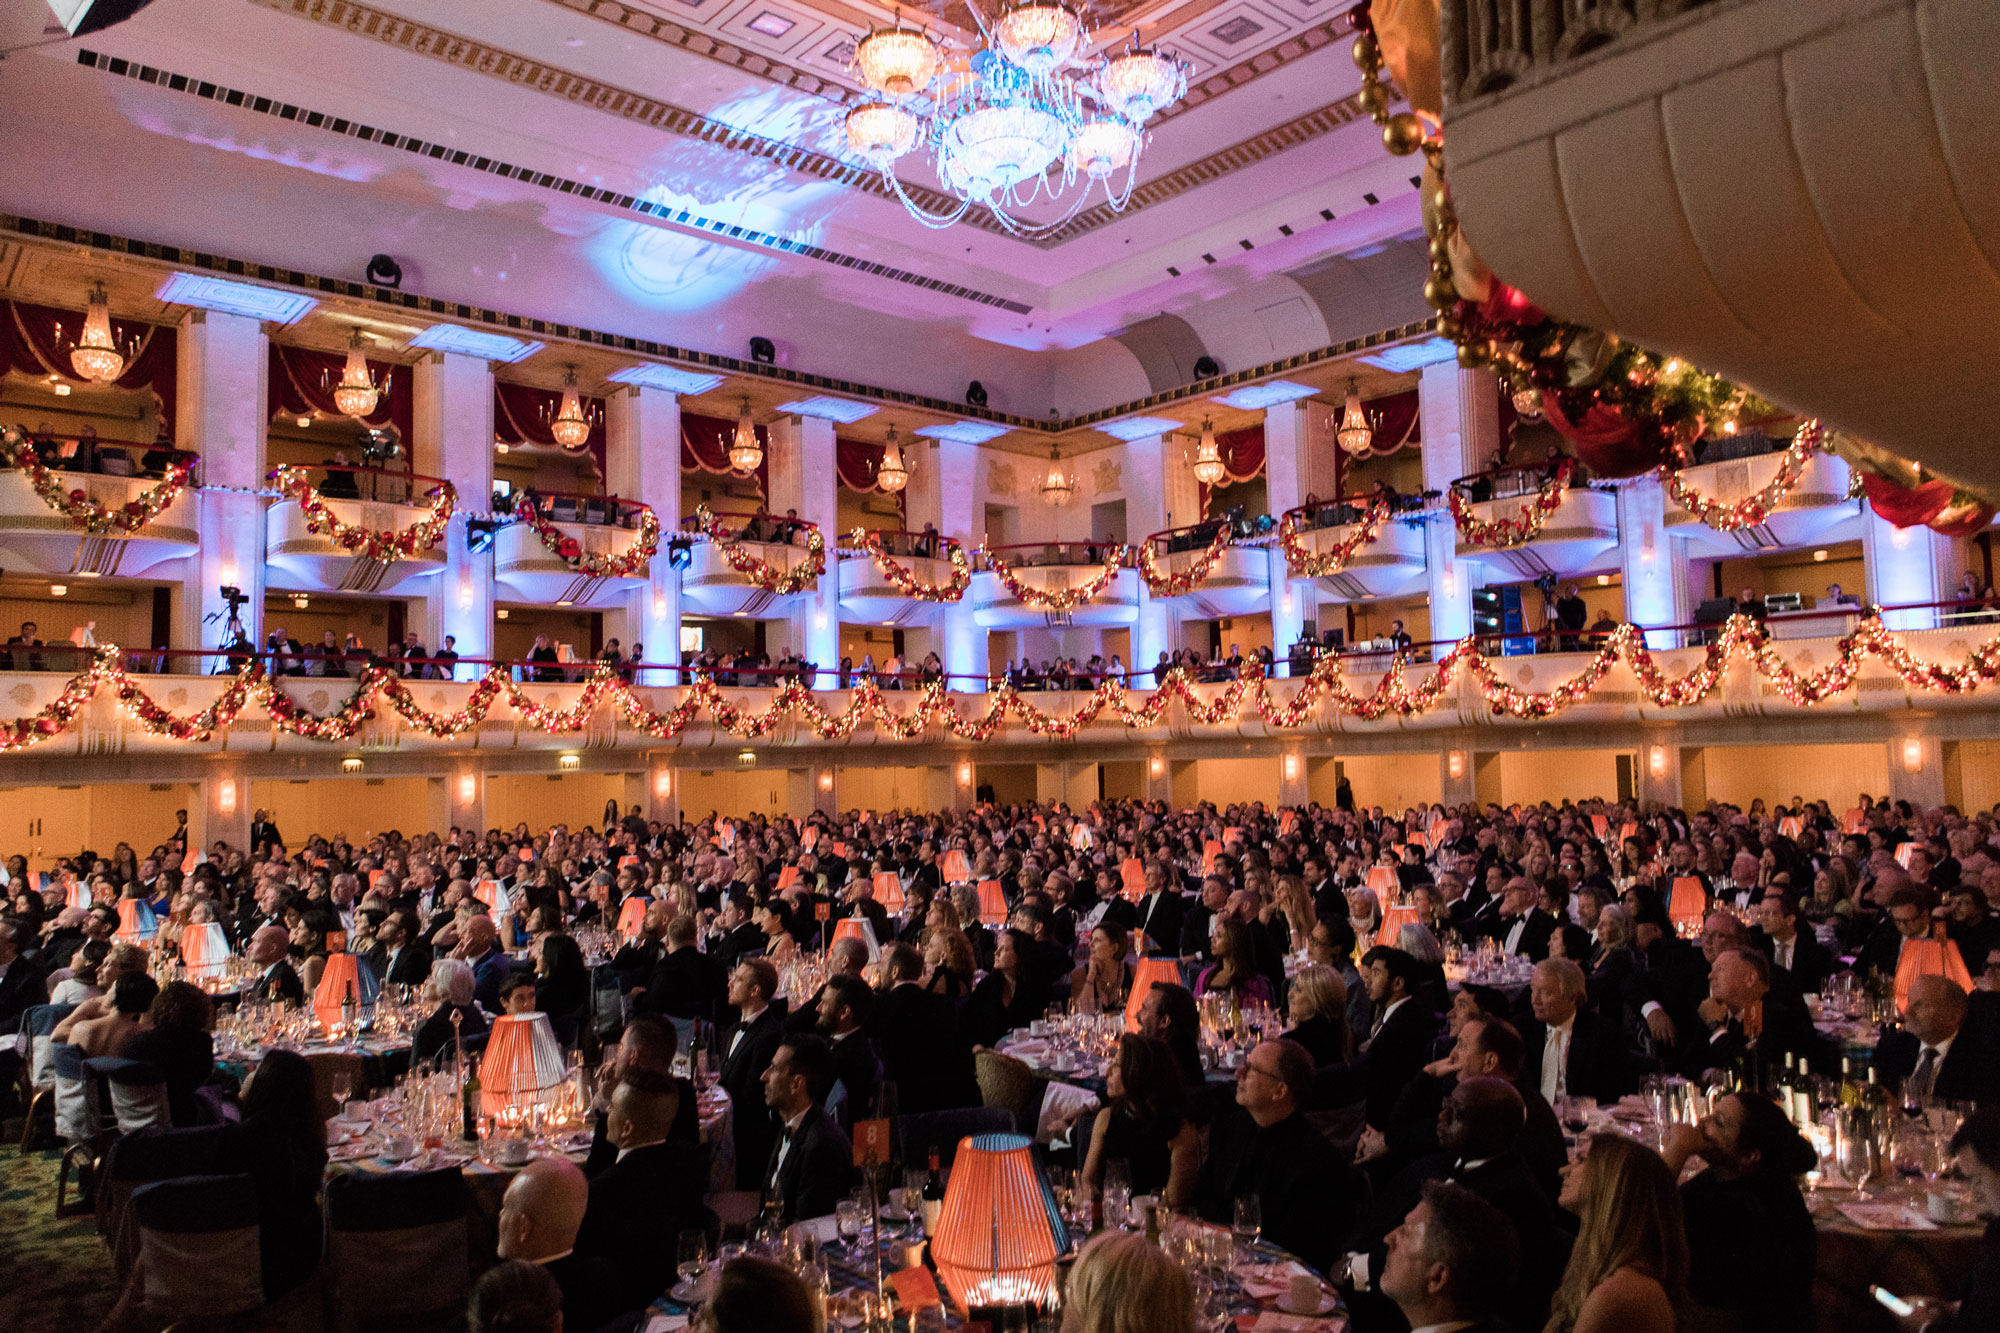 Interior Design Hall Of Fame Awards Celebrates Last Year At Waldorf Astoria